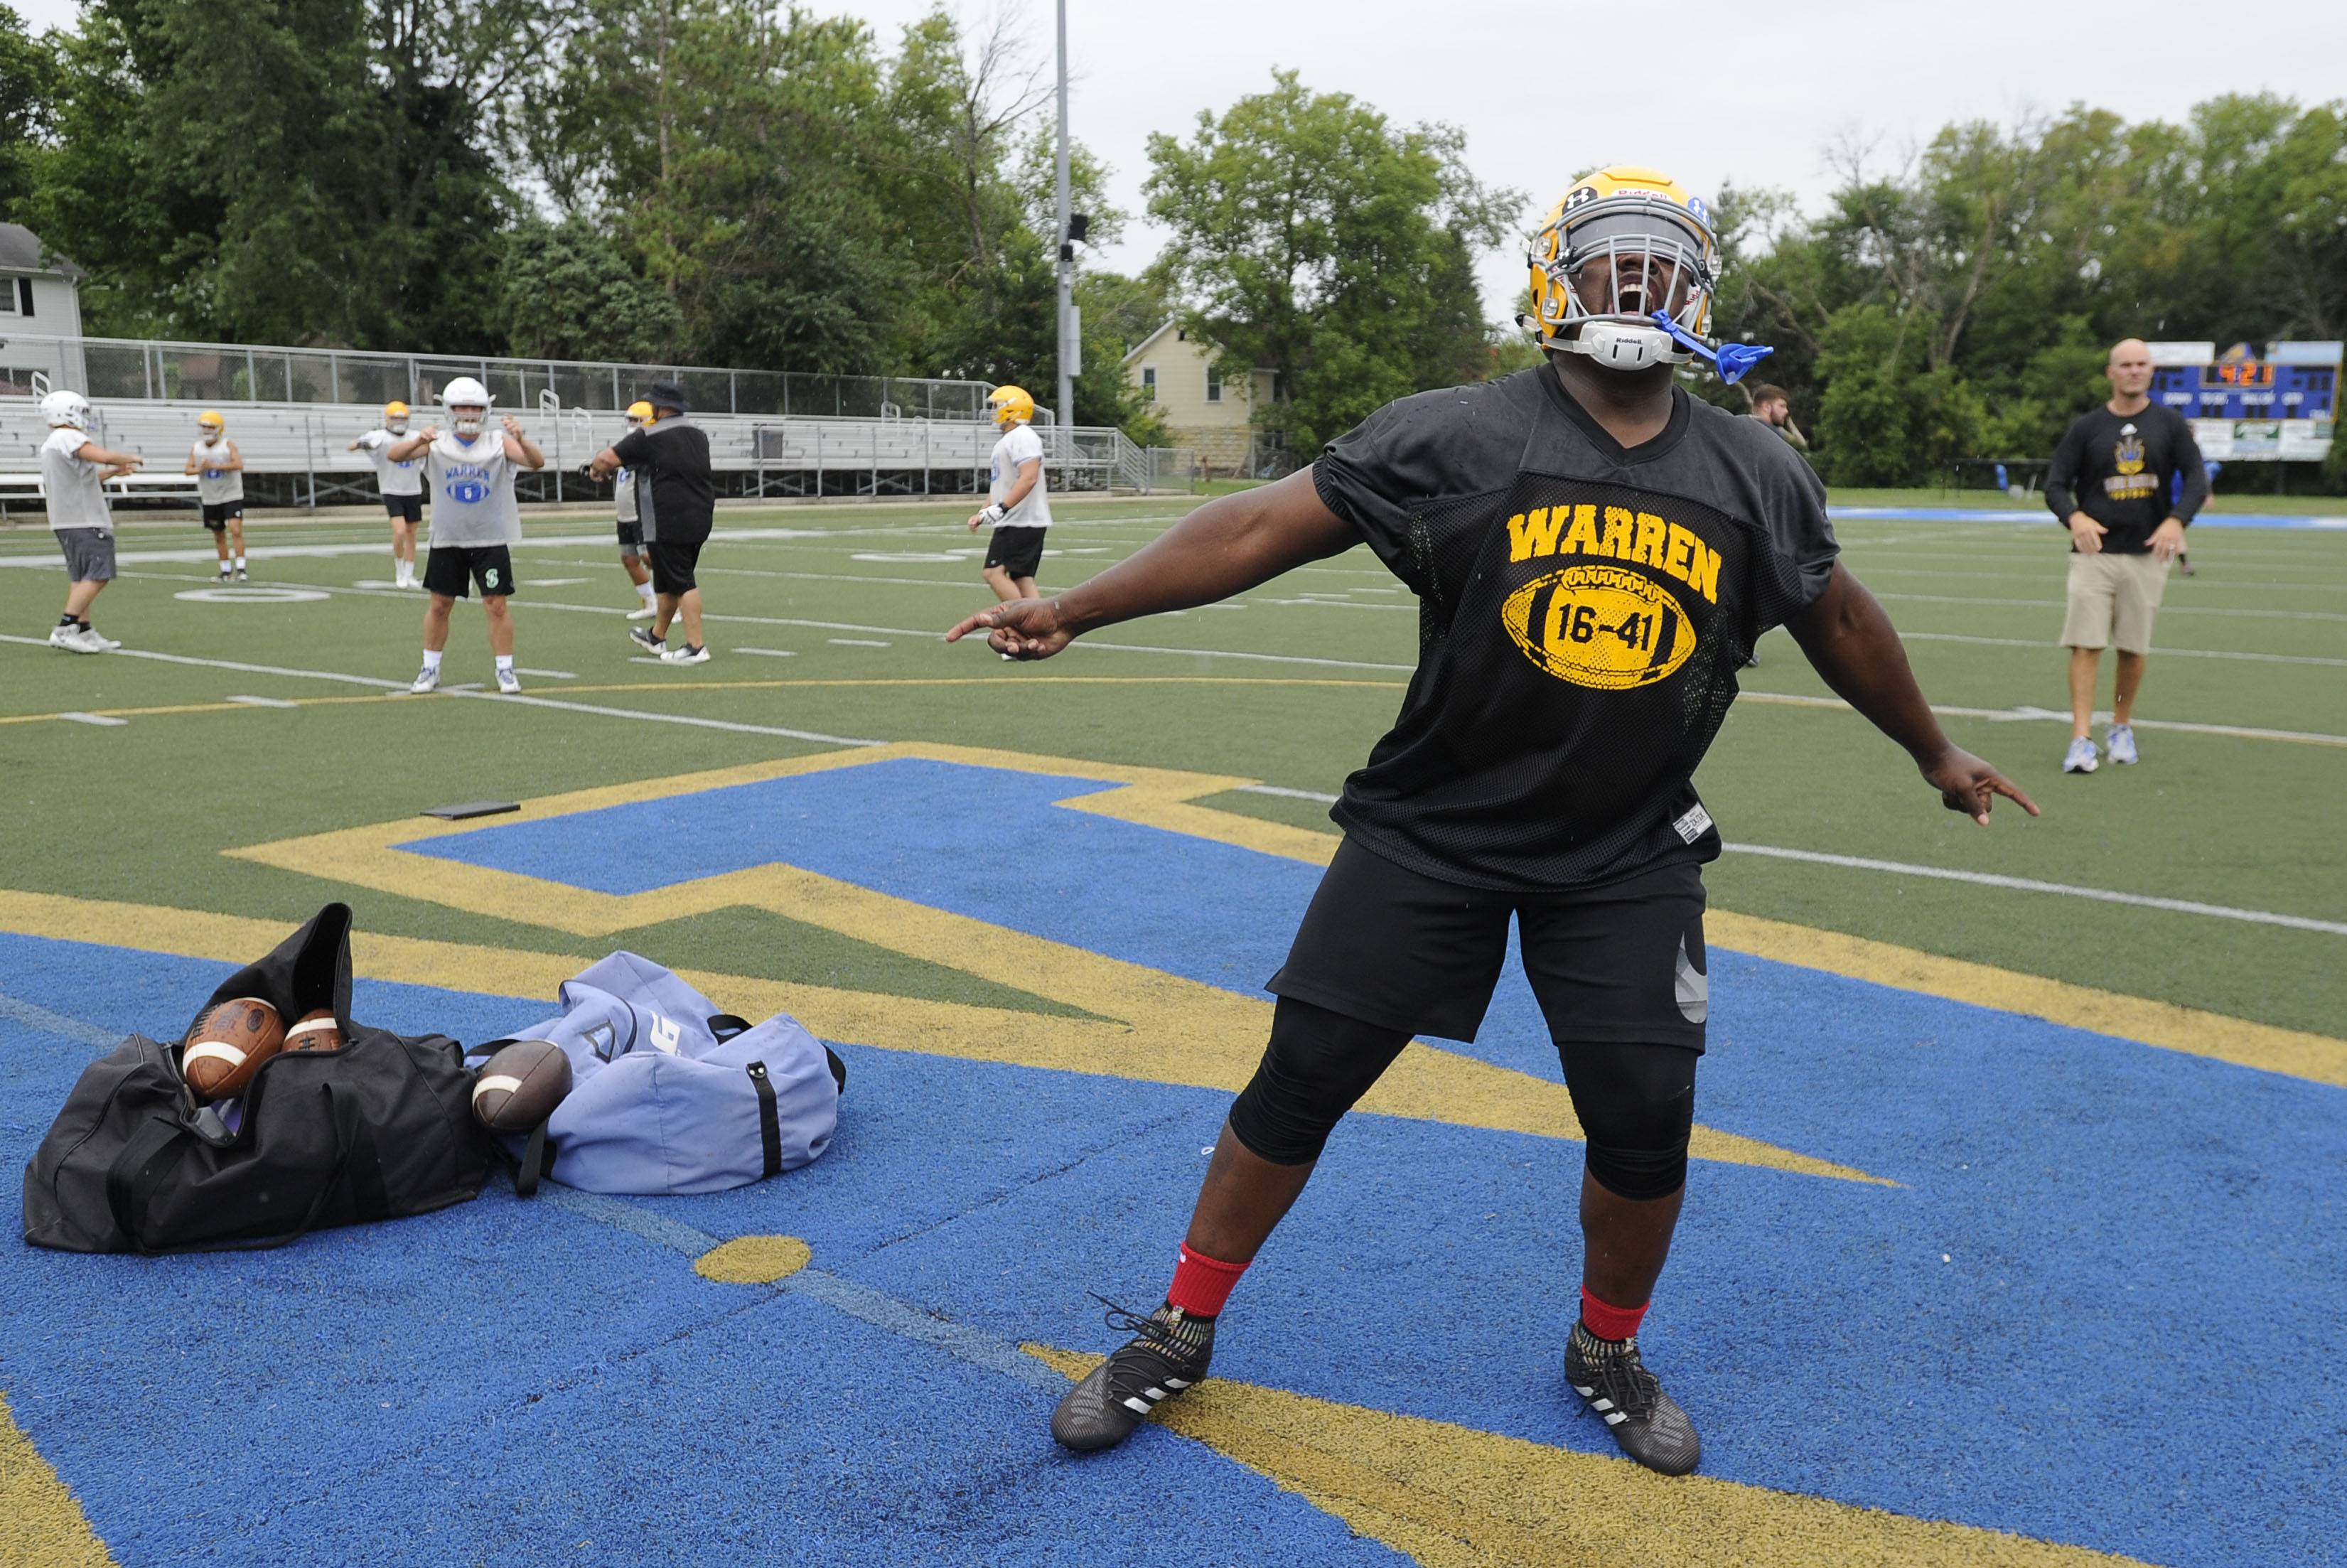 Images: First day of high school football practice in the suburbs